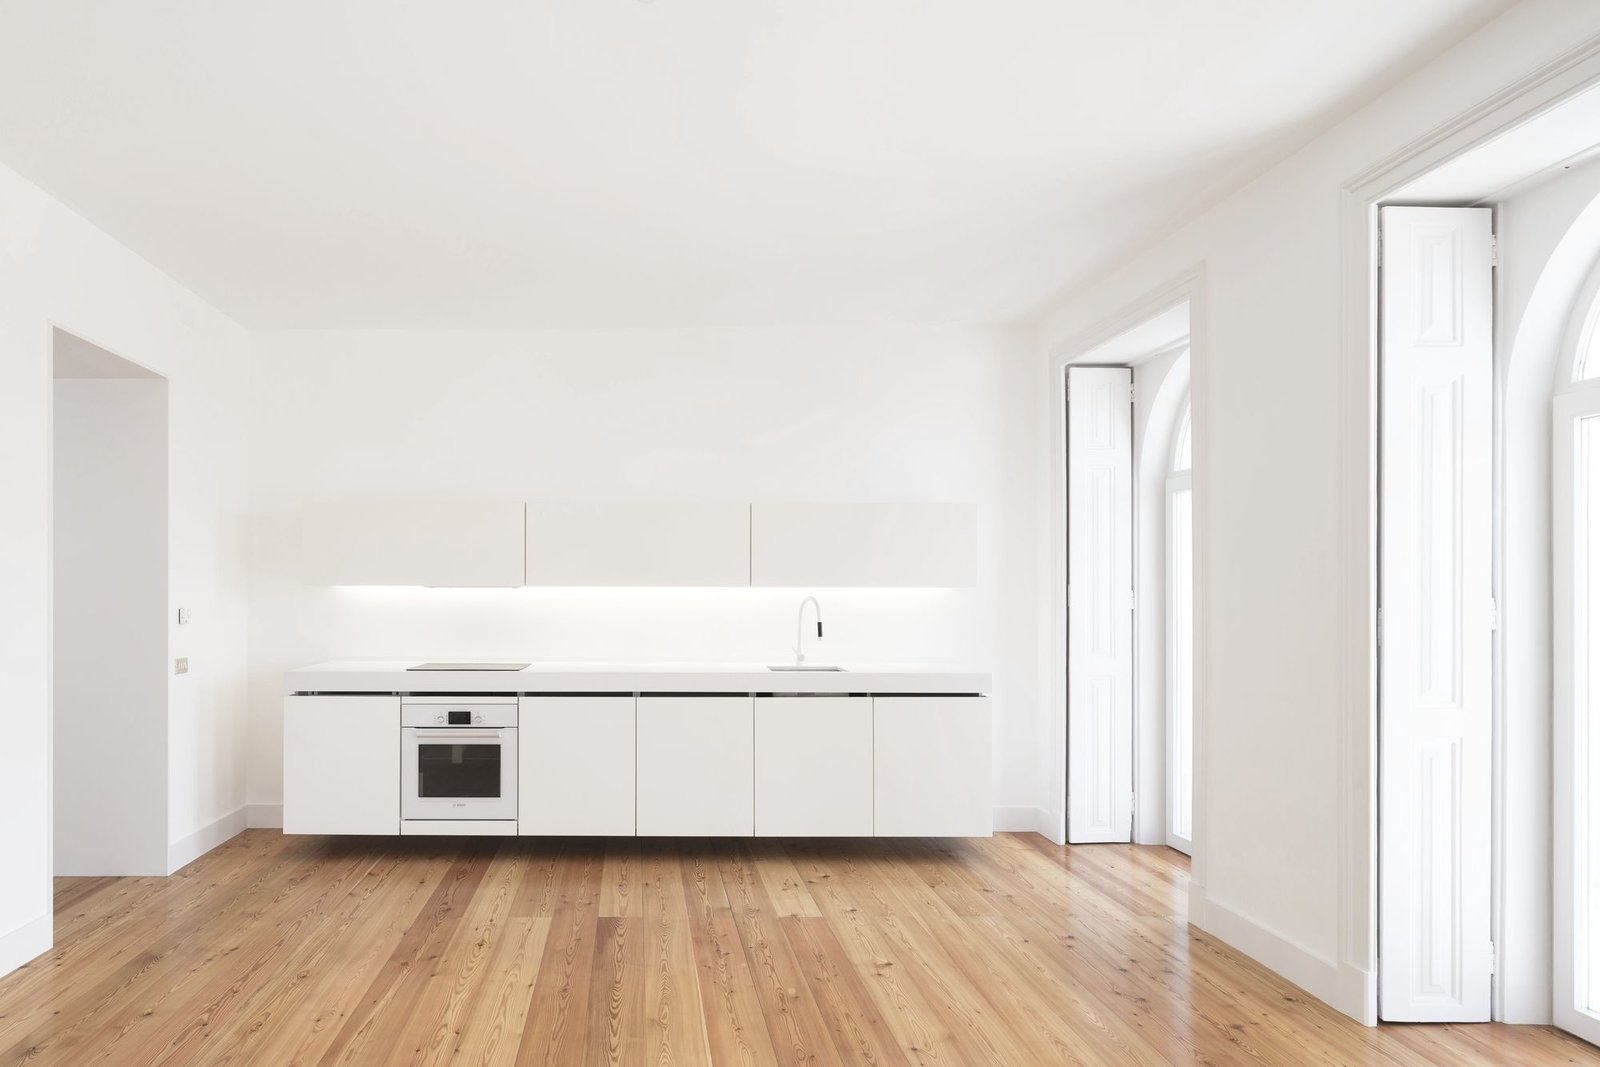 Tagged: Kitchen, Granite Counter, White Cabinet, Medium Hardwood Floor, and Range.  Tap Building by Leibal